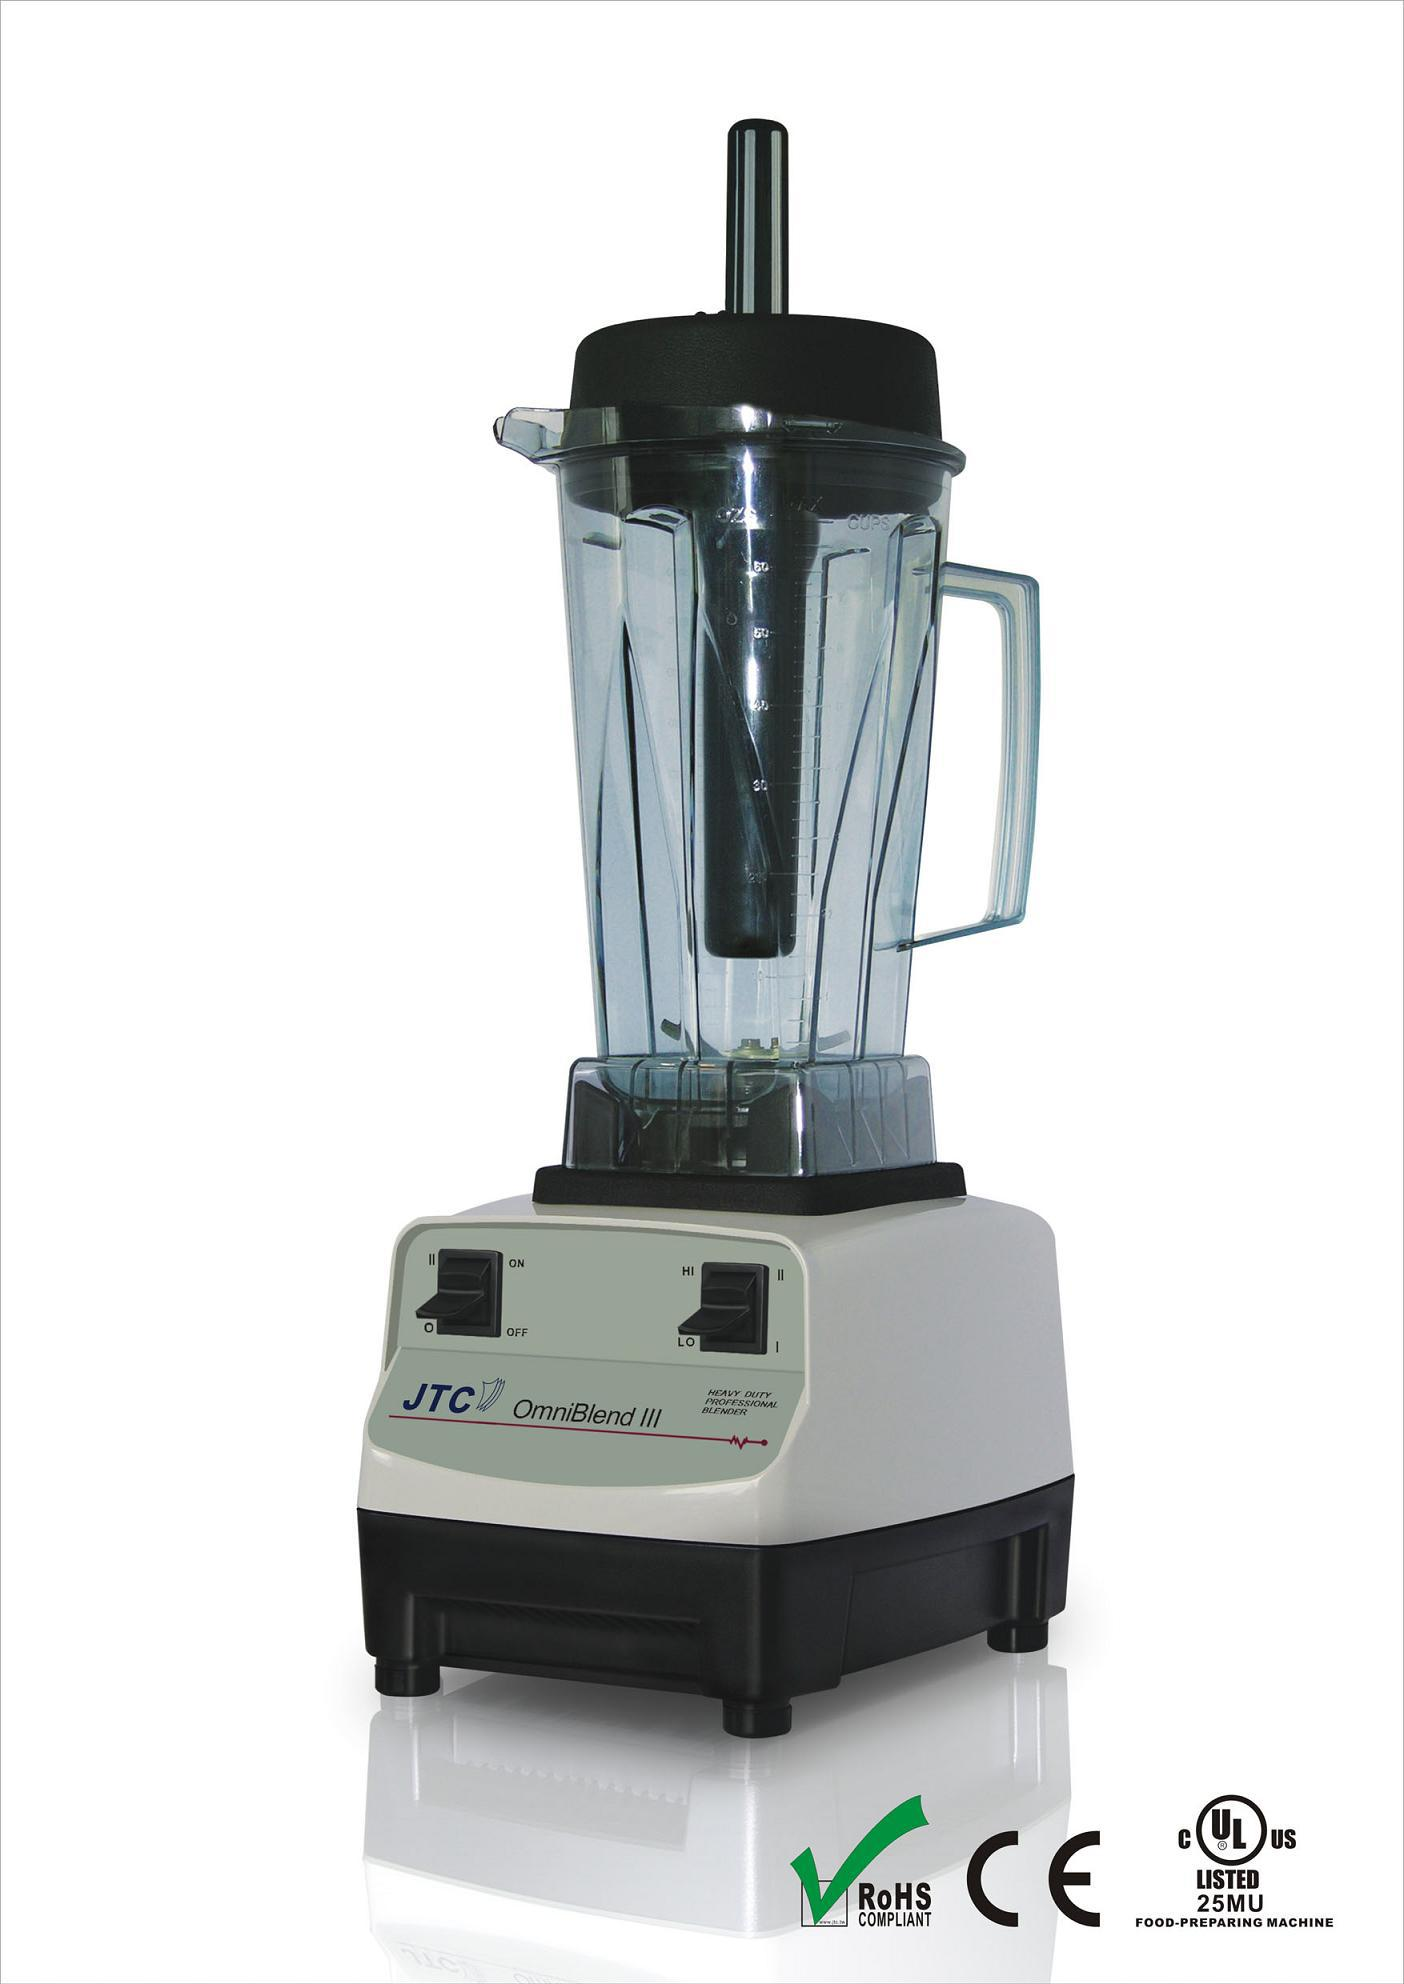 Блендеры JTC OmniBlend Блендер JTC OmniBlend III TM-788 Commercial-Blender-TM-788--1261459357.jpg